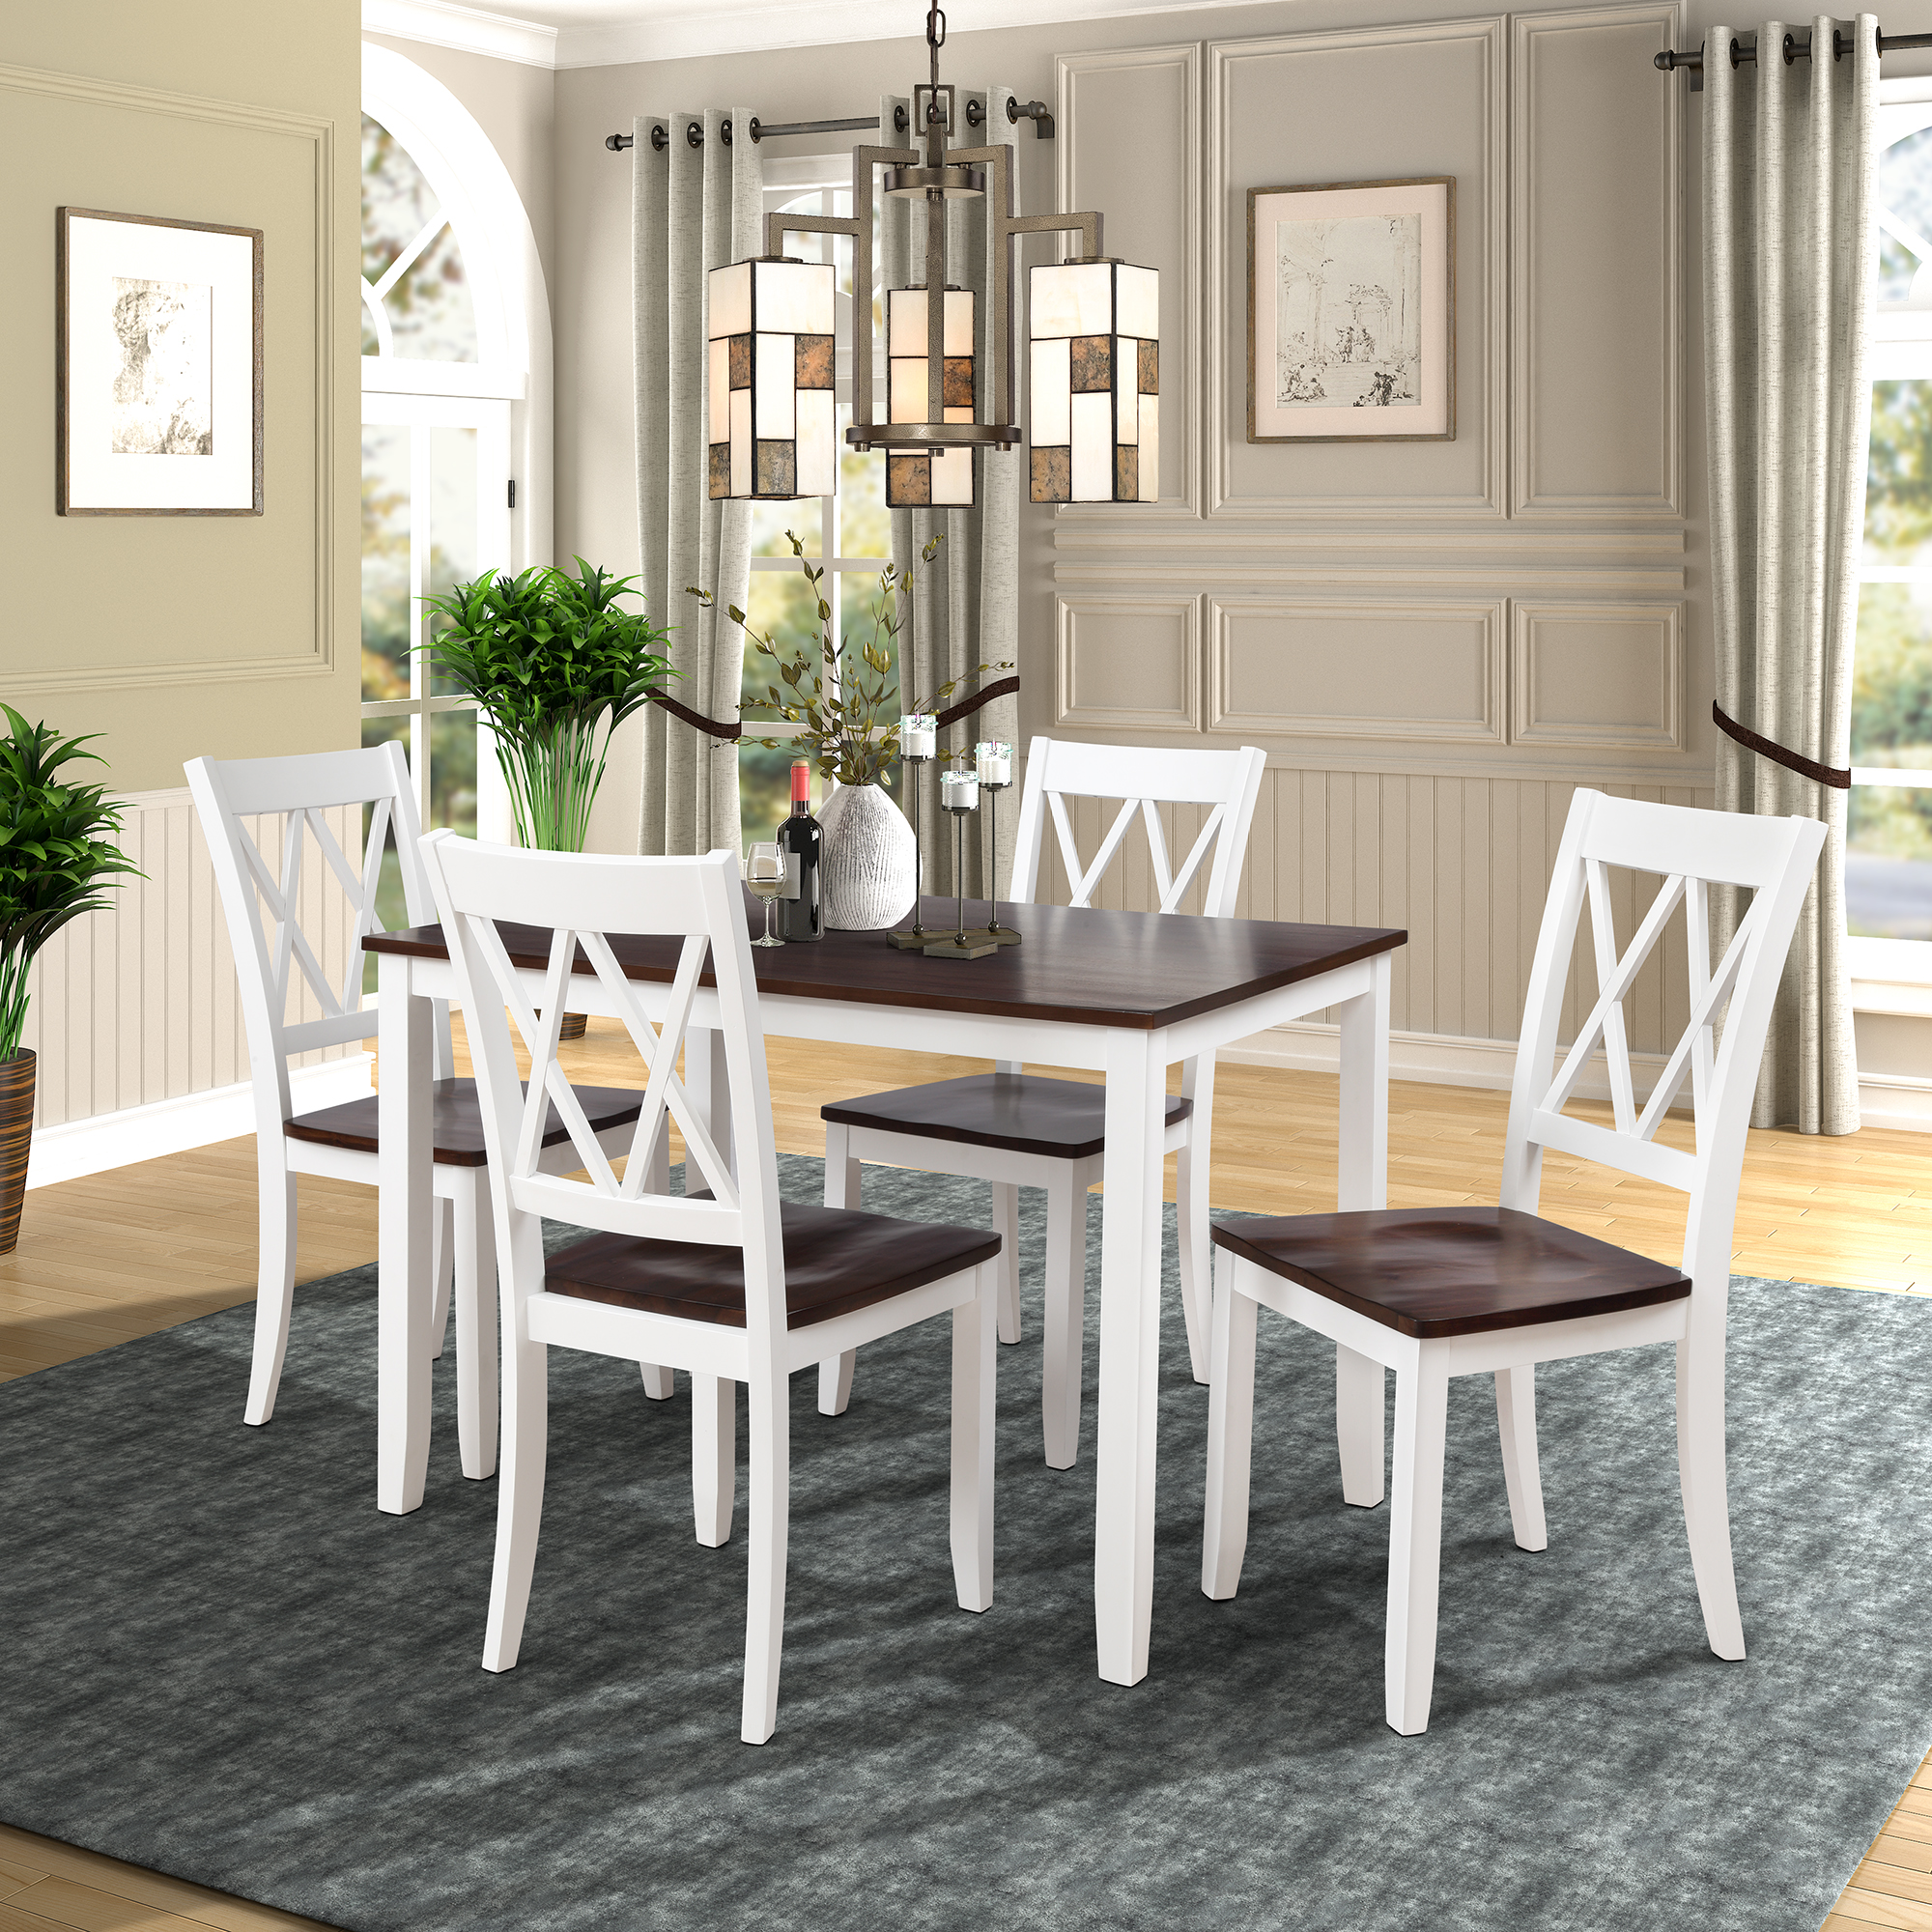 Dining Room Sets Clearance: Clearance!5 Piece Dining Table Set, Modern Kitchen Table